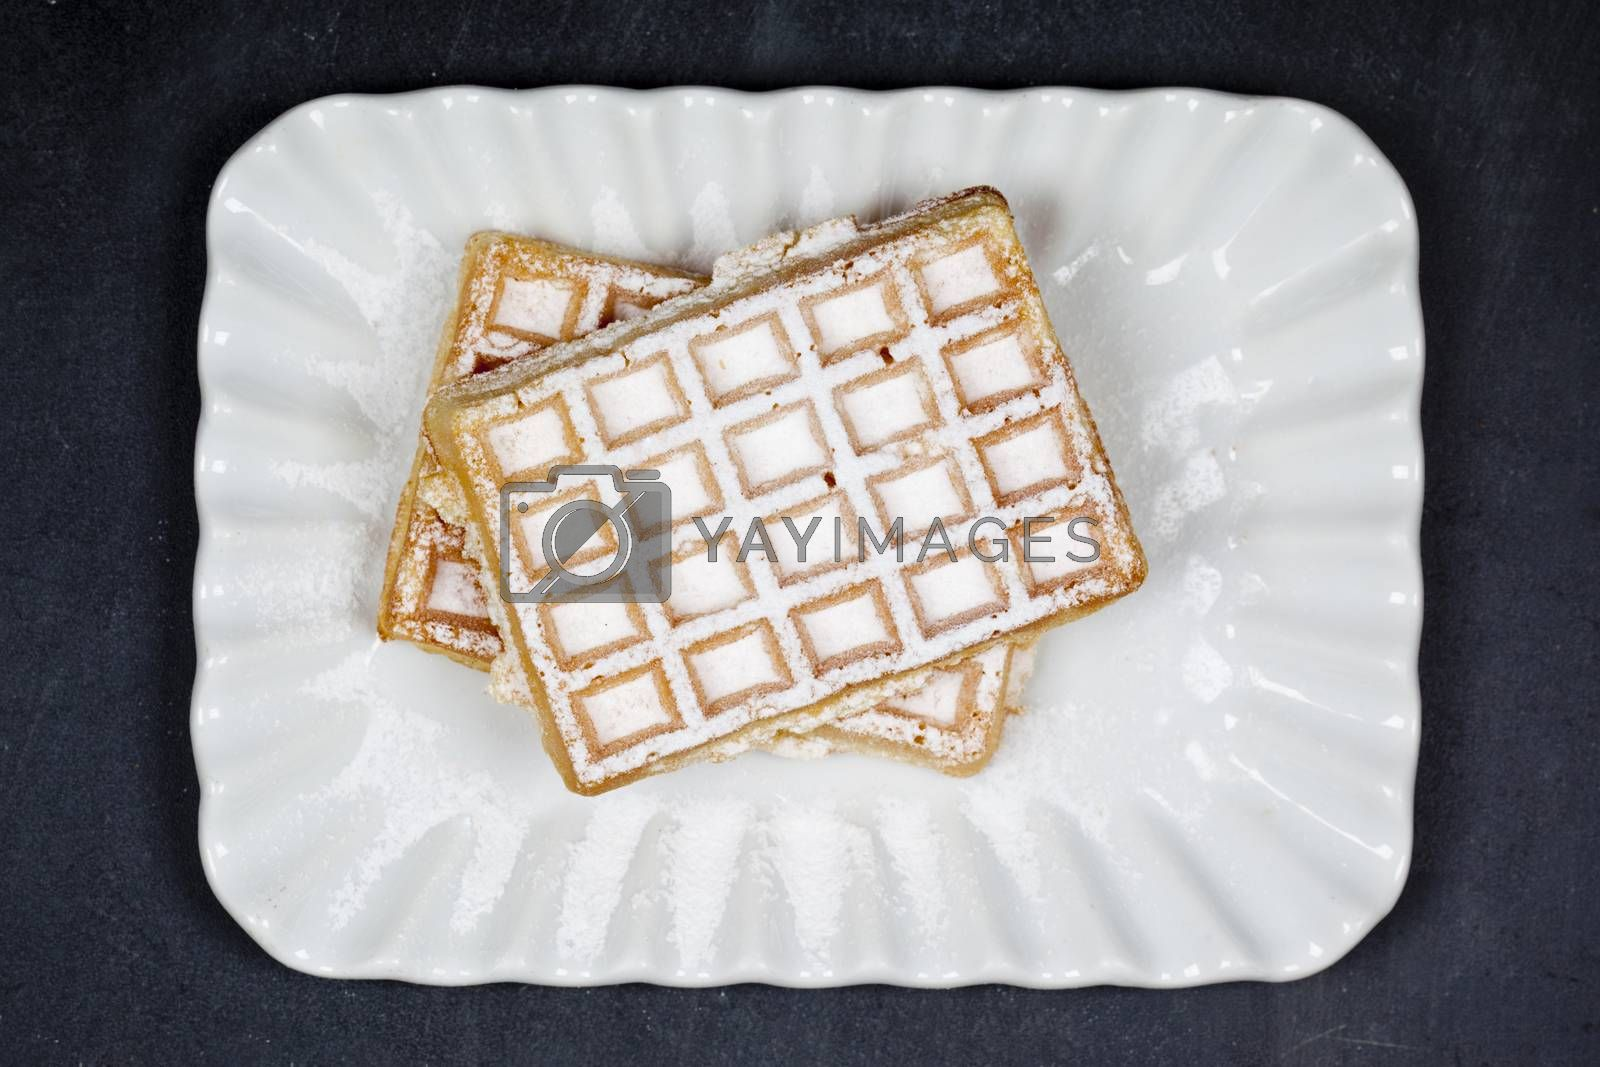 Belgium waffers with sugar powder on ceramic plateon black board background. Fresh baked wafers top view.